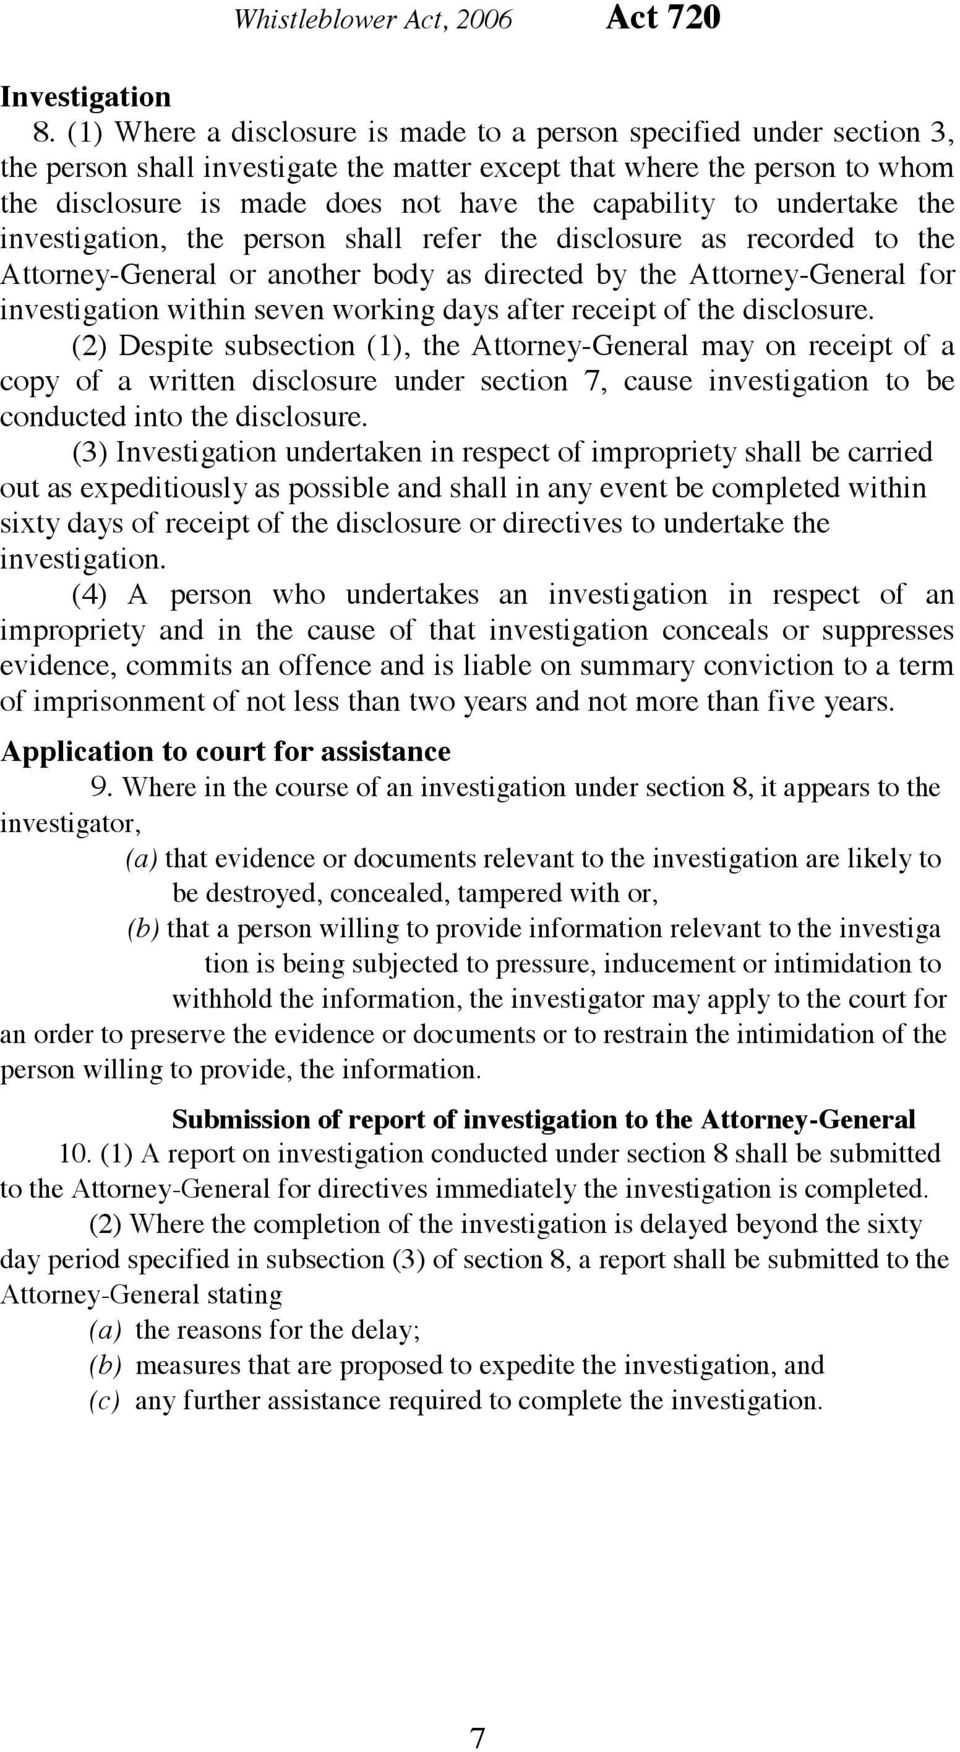 to undertake the investigation, the person shall refer the disclosure as recorded to the Attorney-General or another body as directed by the Attorney-General for investigation within seven working